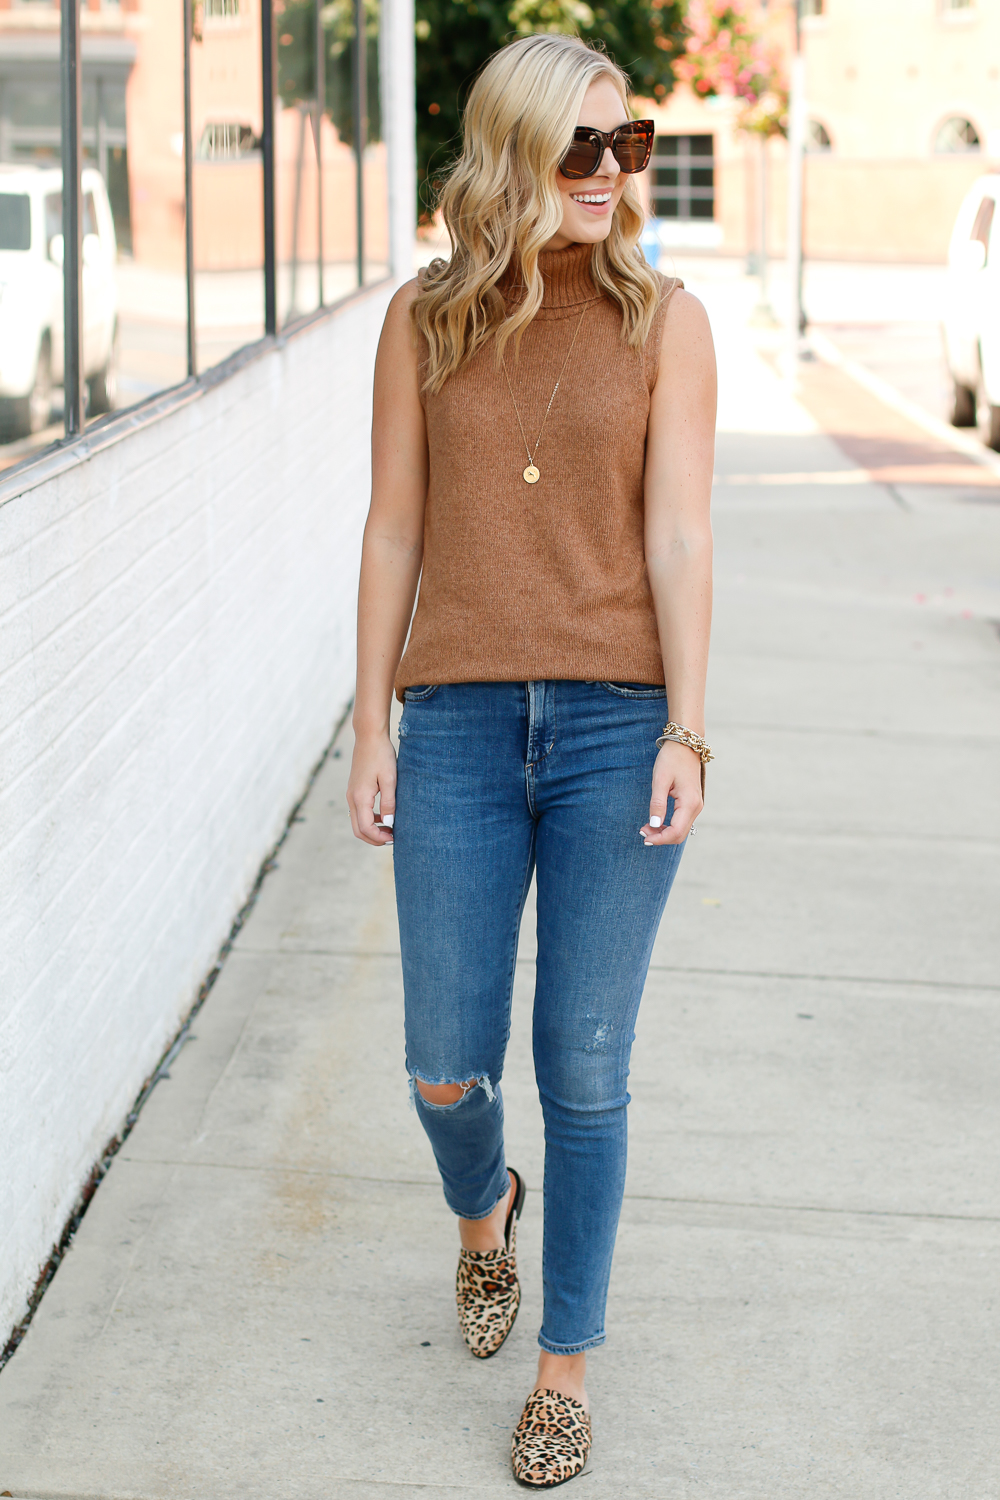 jcrew turtleneck sweater outfit